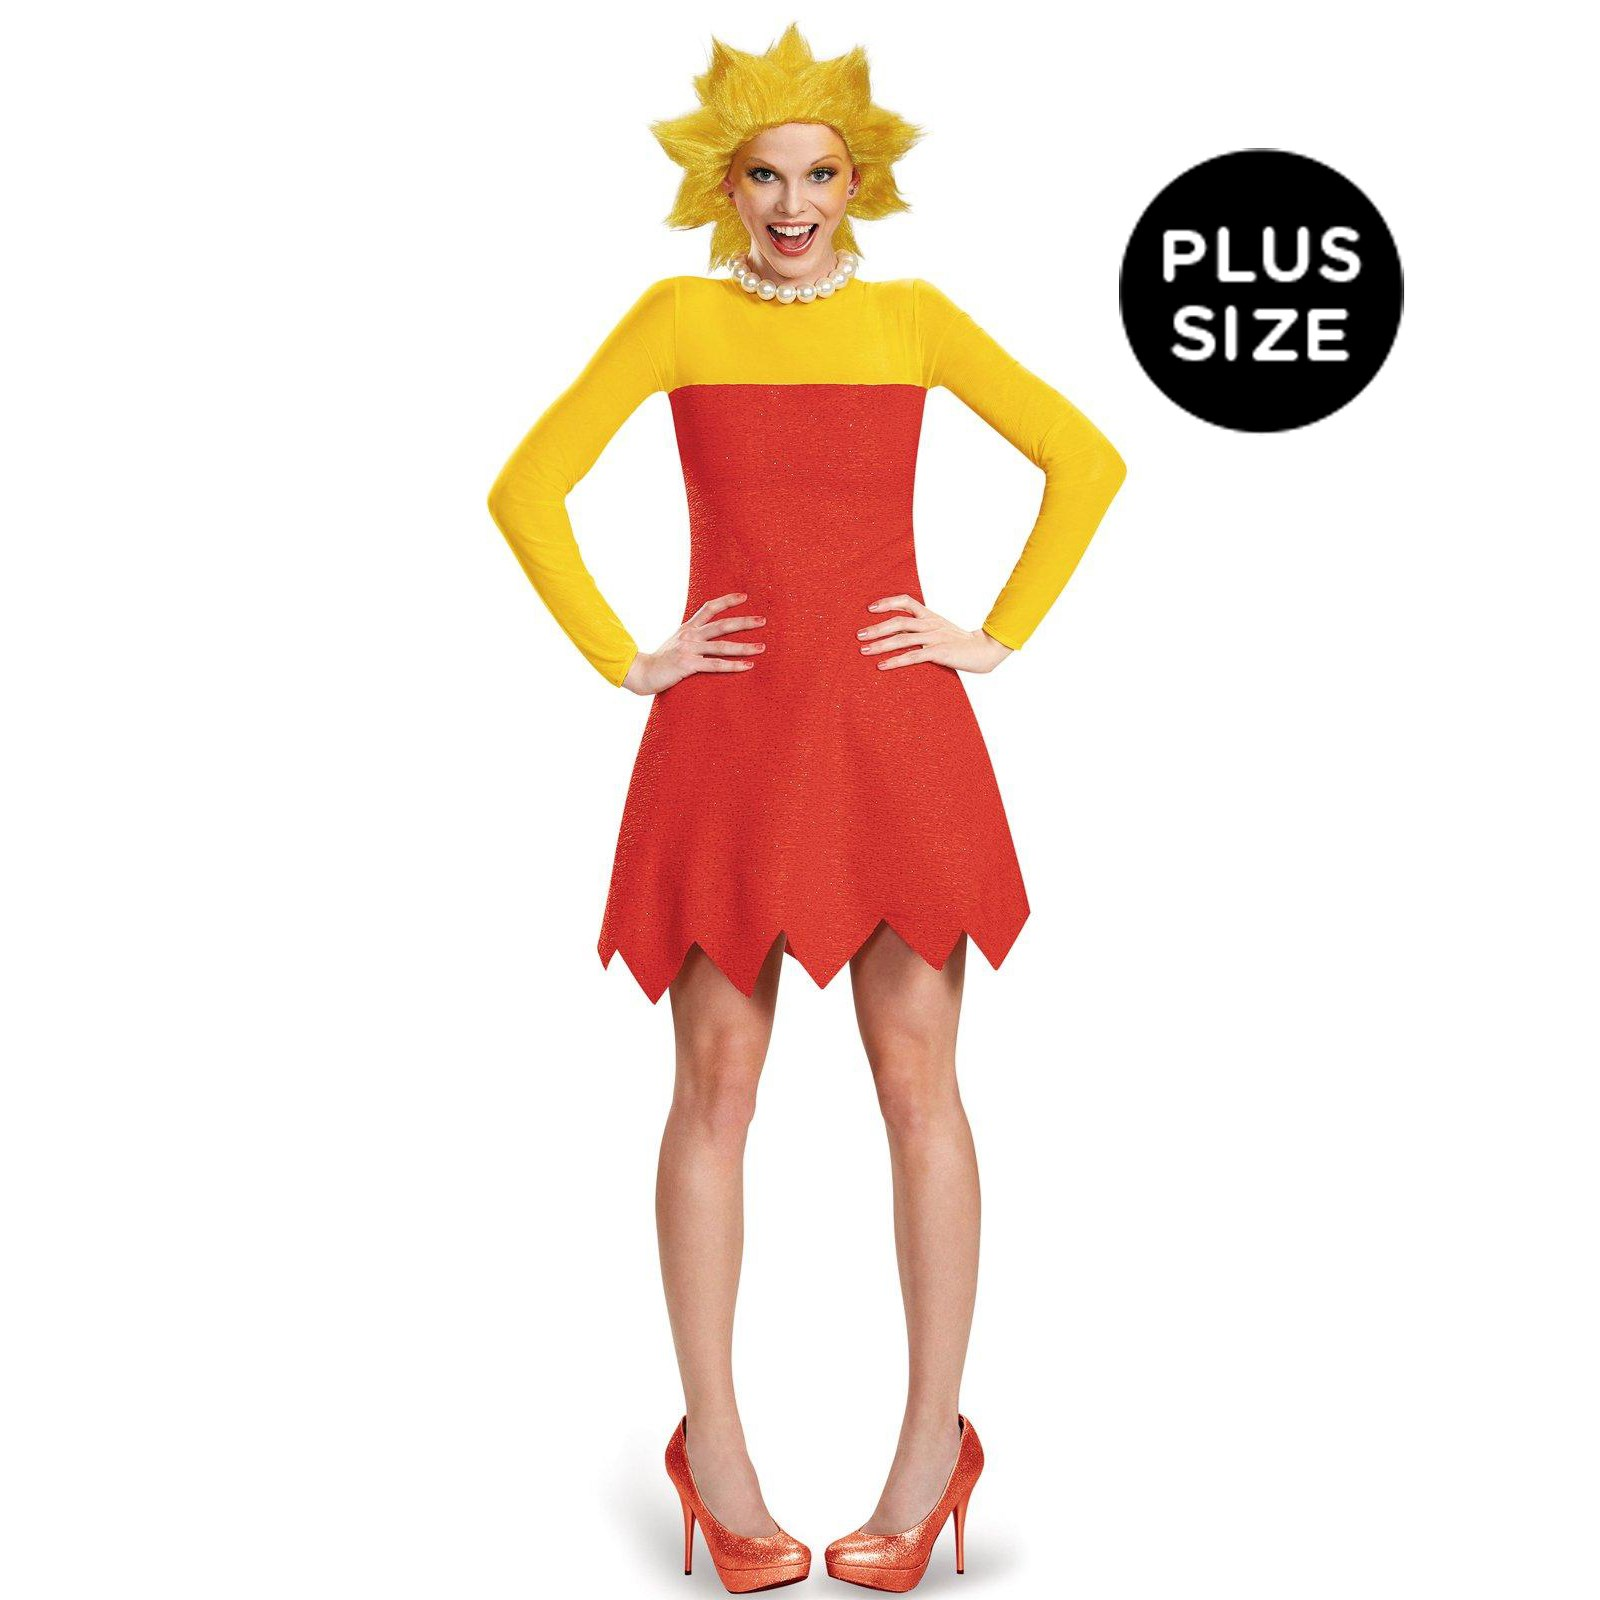 The Simpsons: Womens Deluxe Plus Size Lisa Costume